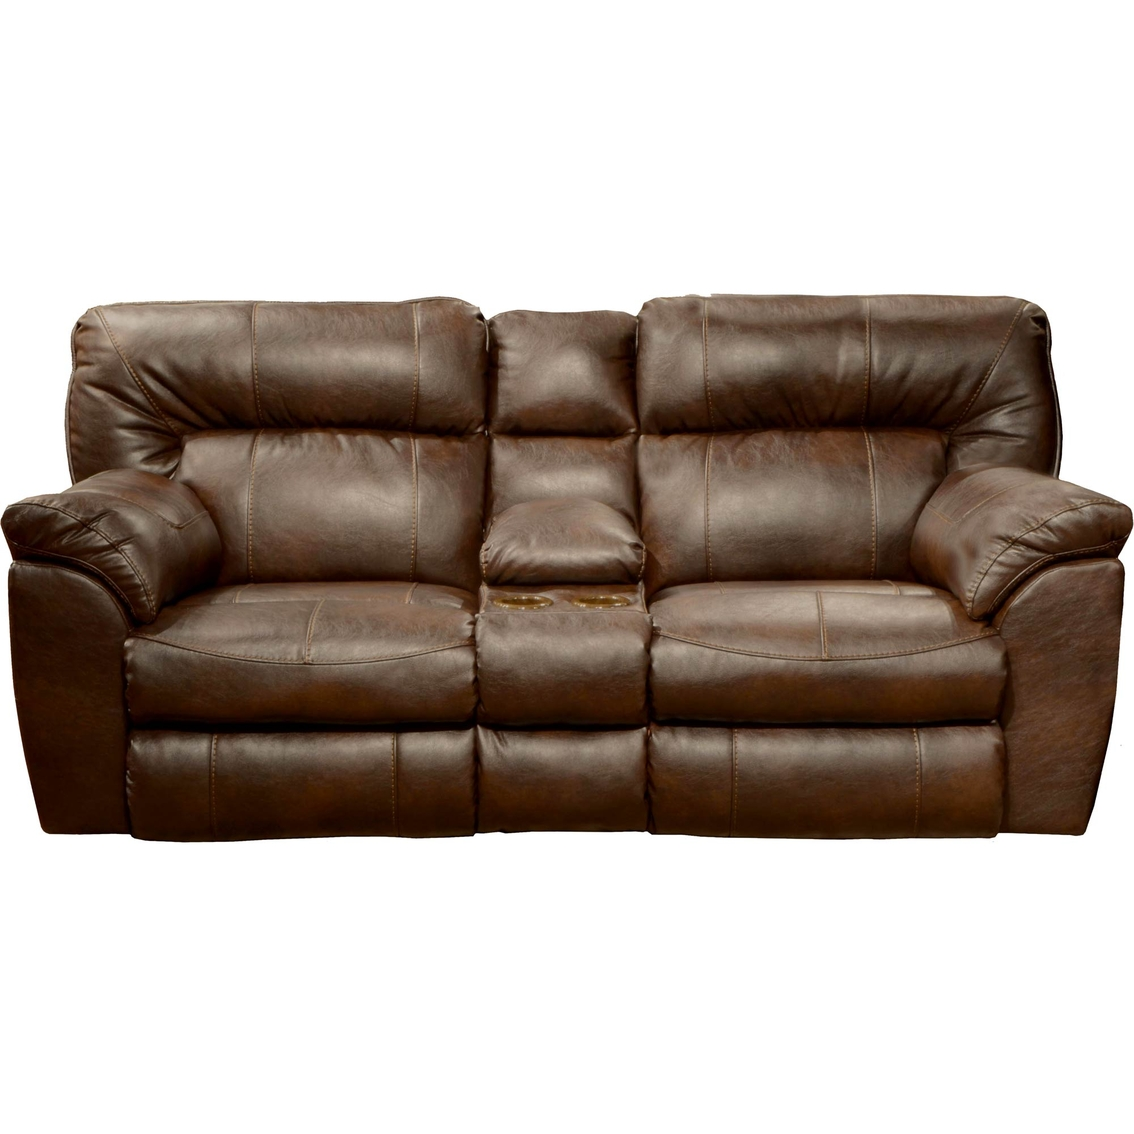 Catnapper Nolan Power Extra Wide Reclining Loveseat Sofas Couches Home Appliances Shop